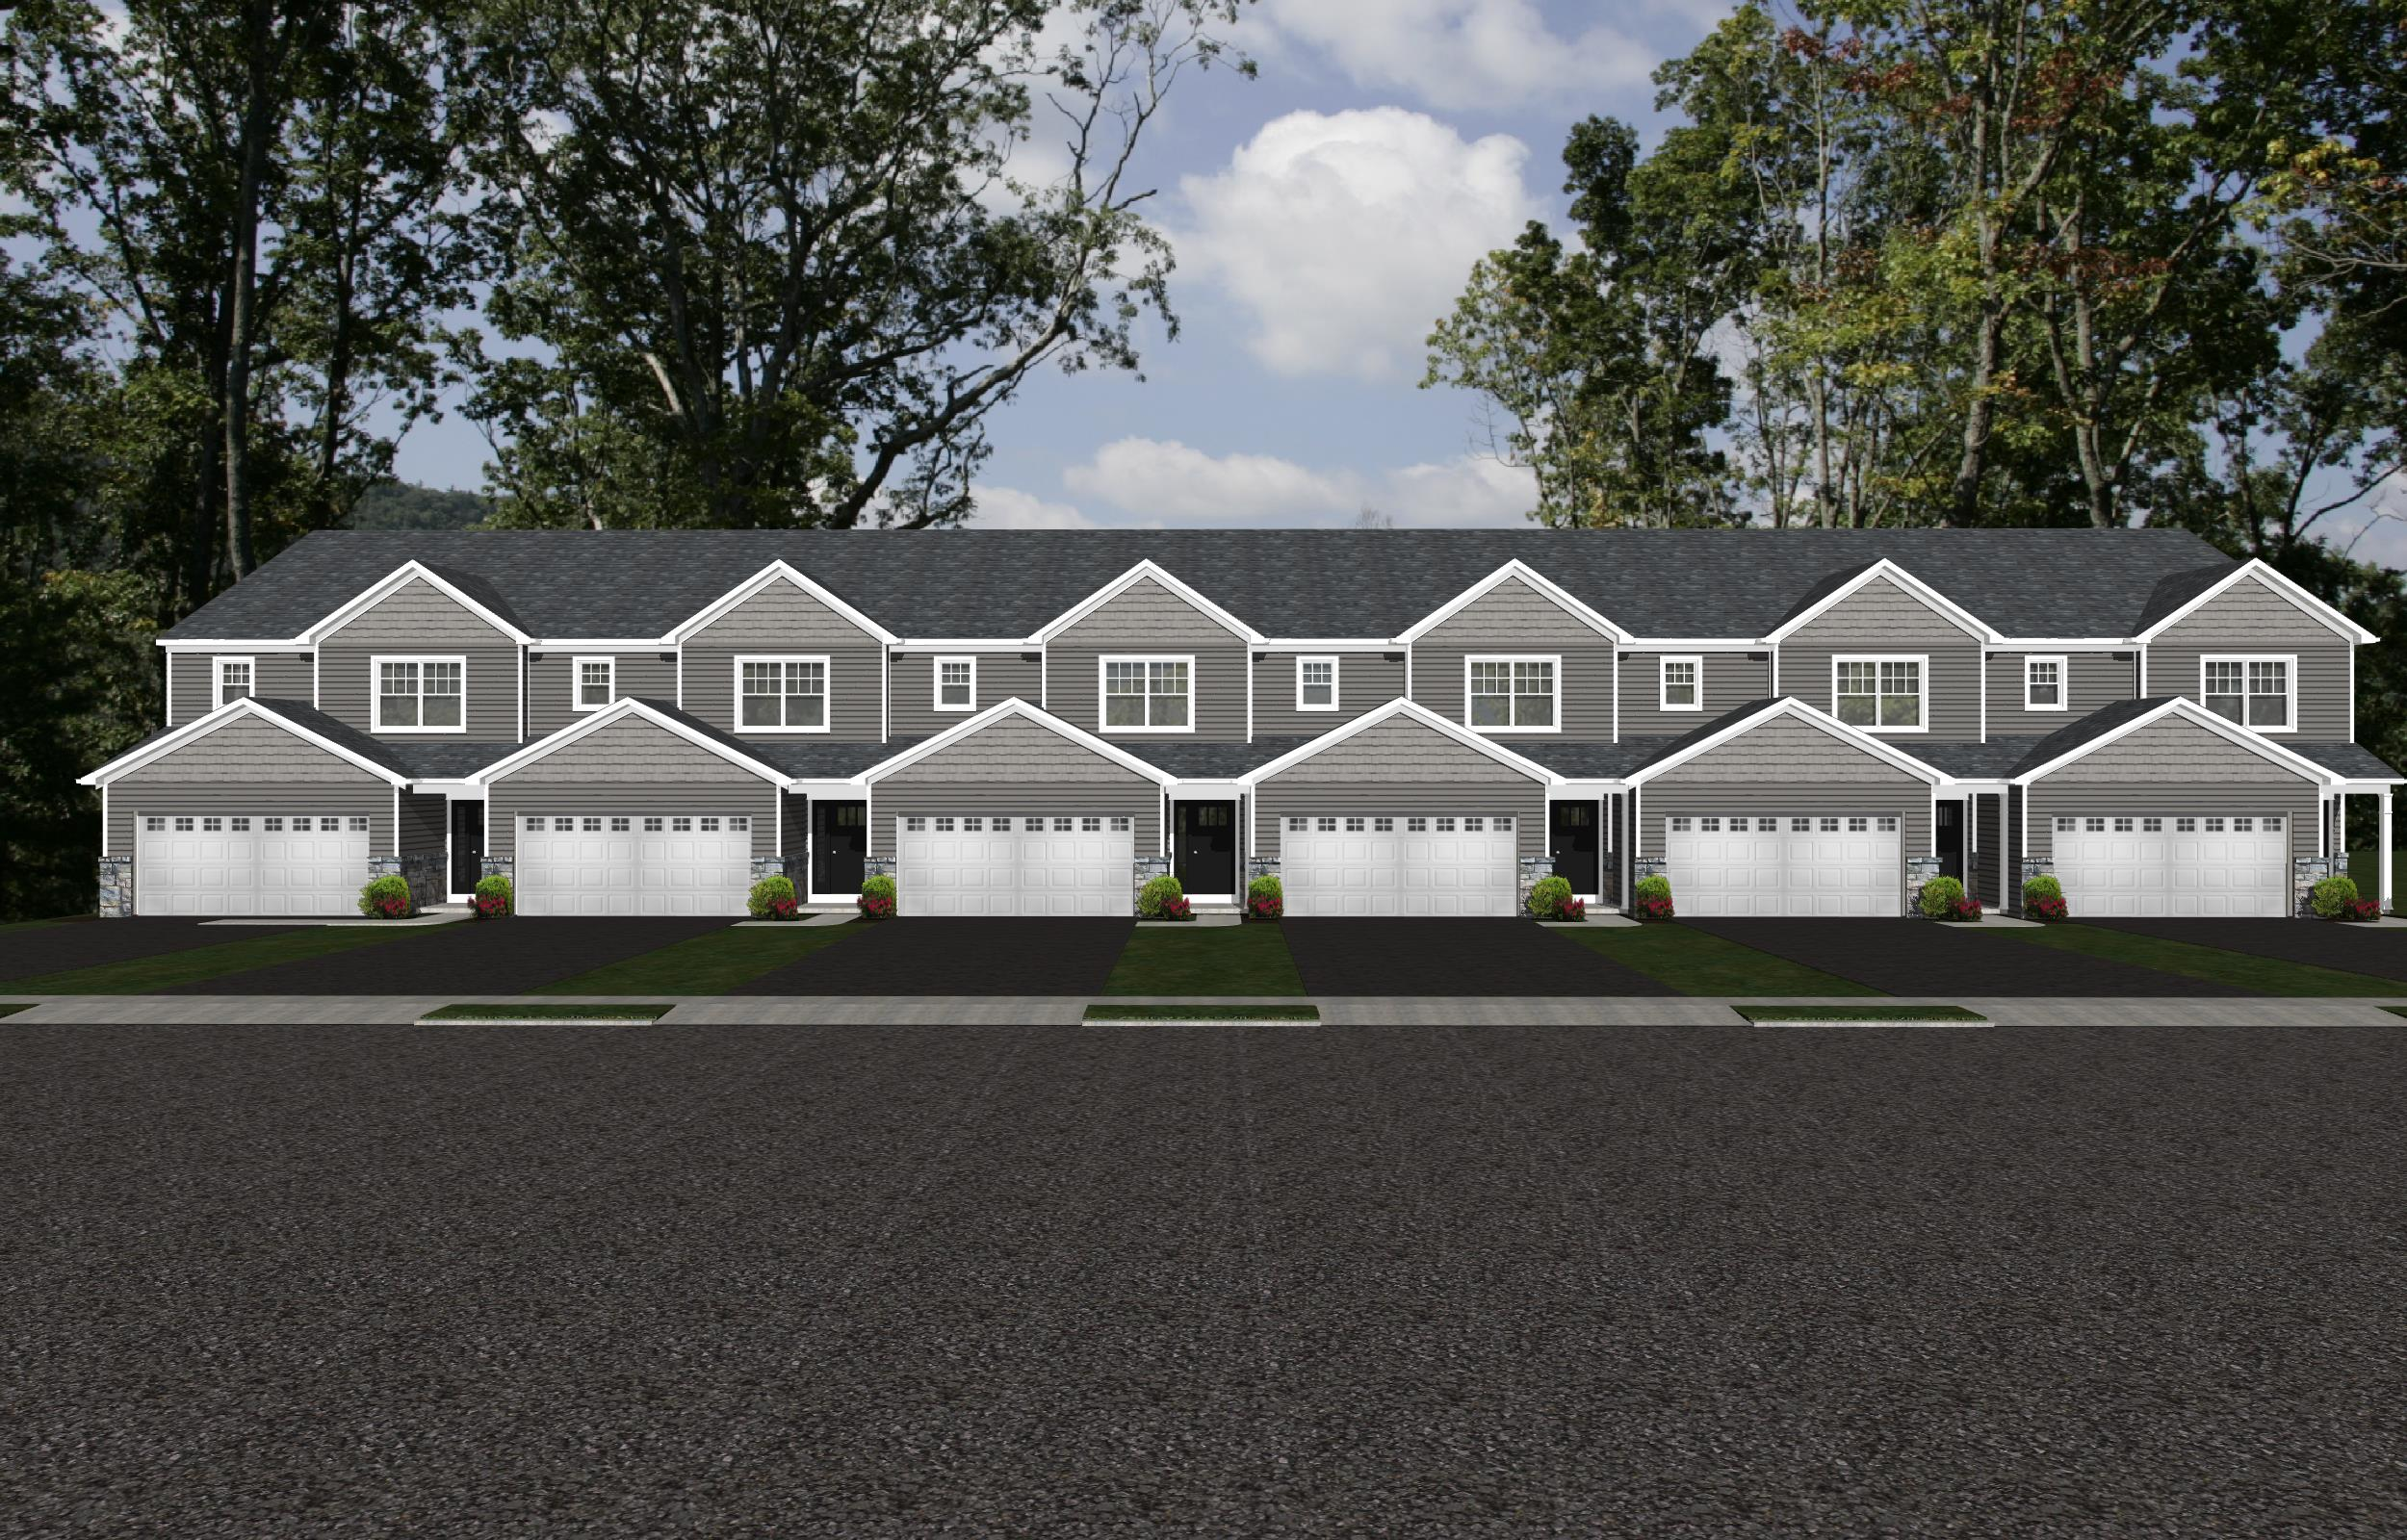 Upscale Townhomes For Sale Emmaus PA